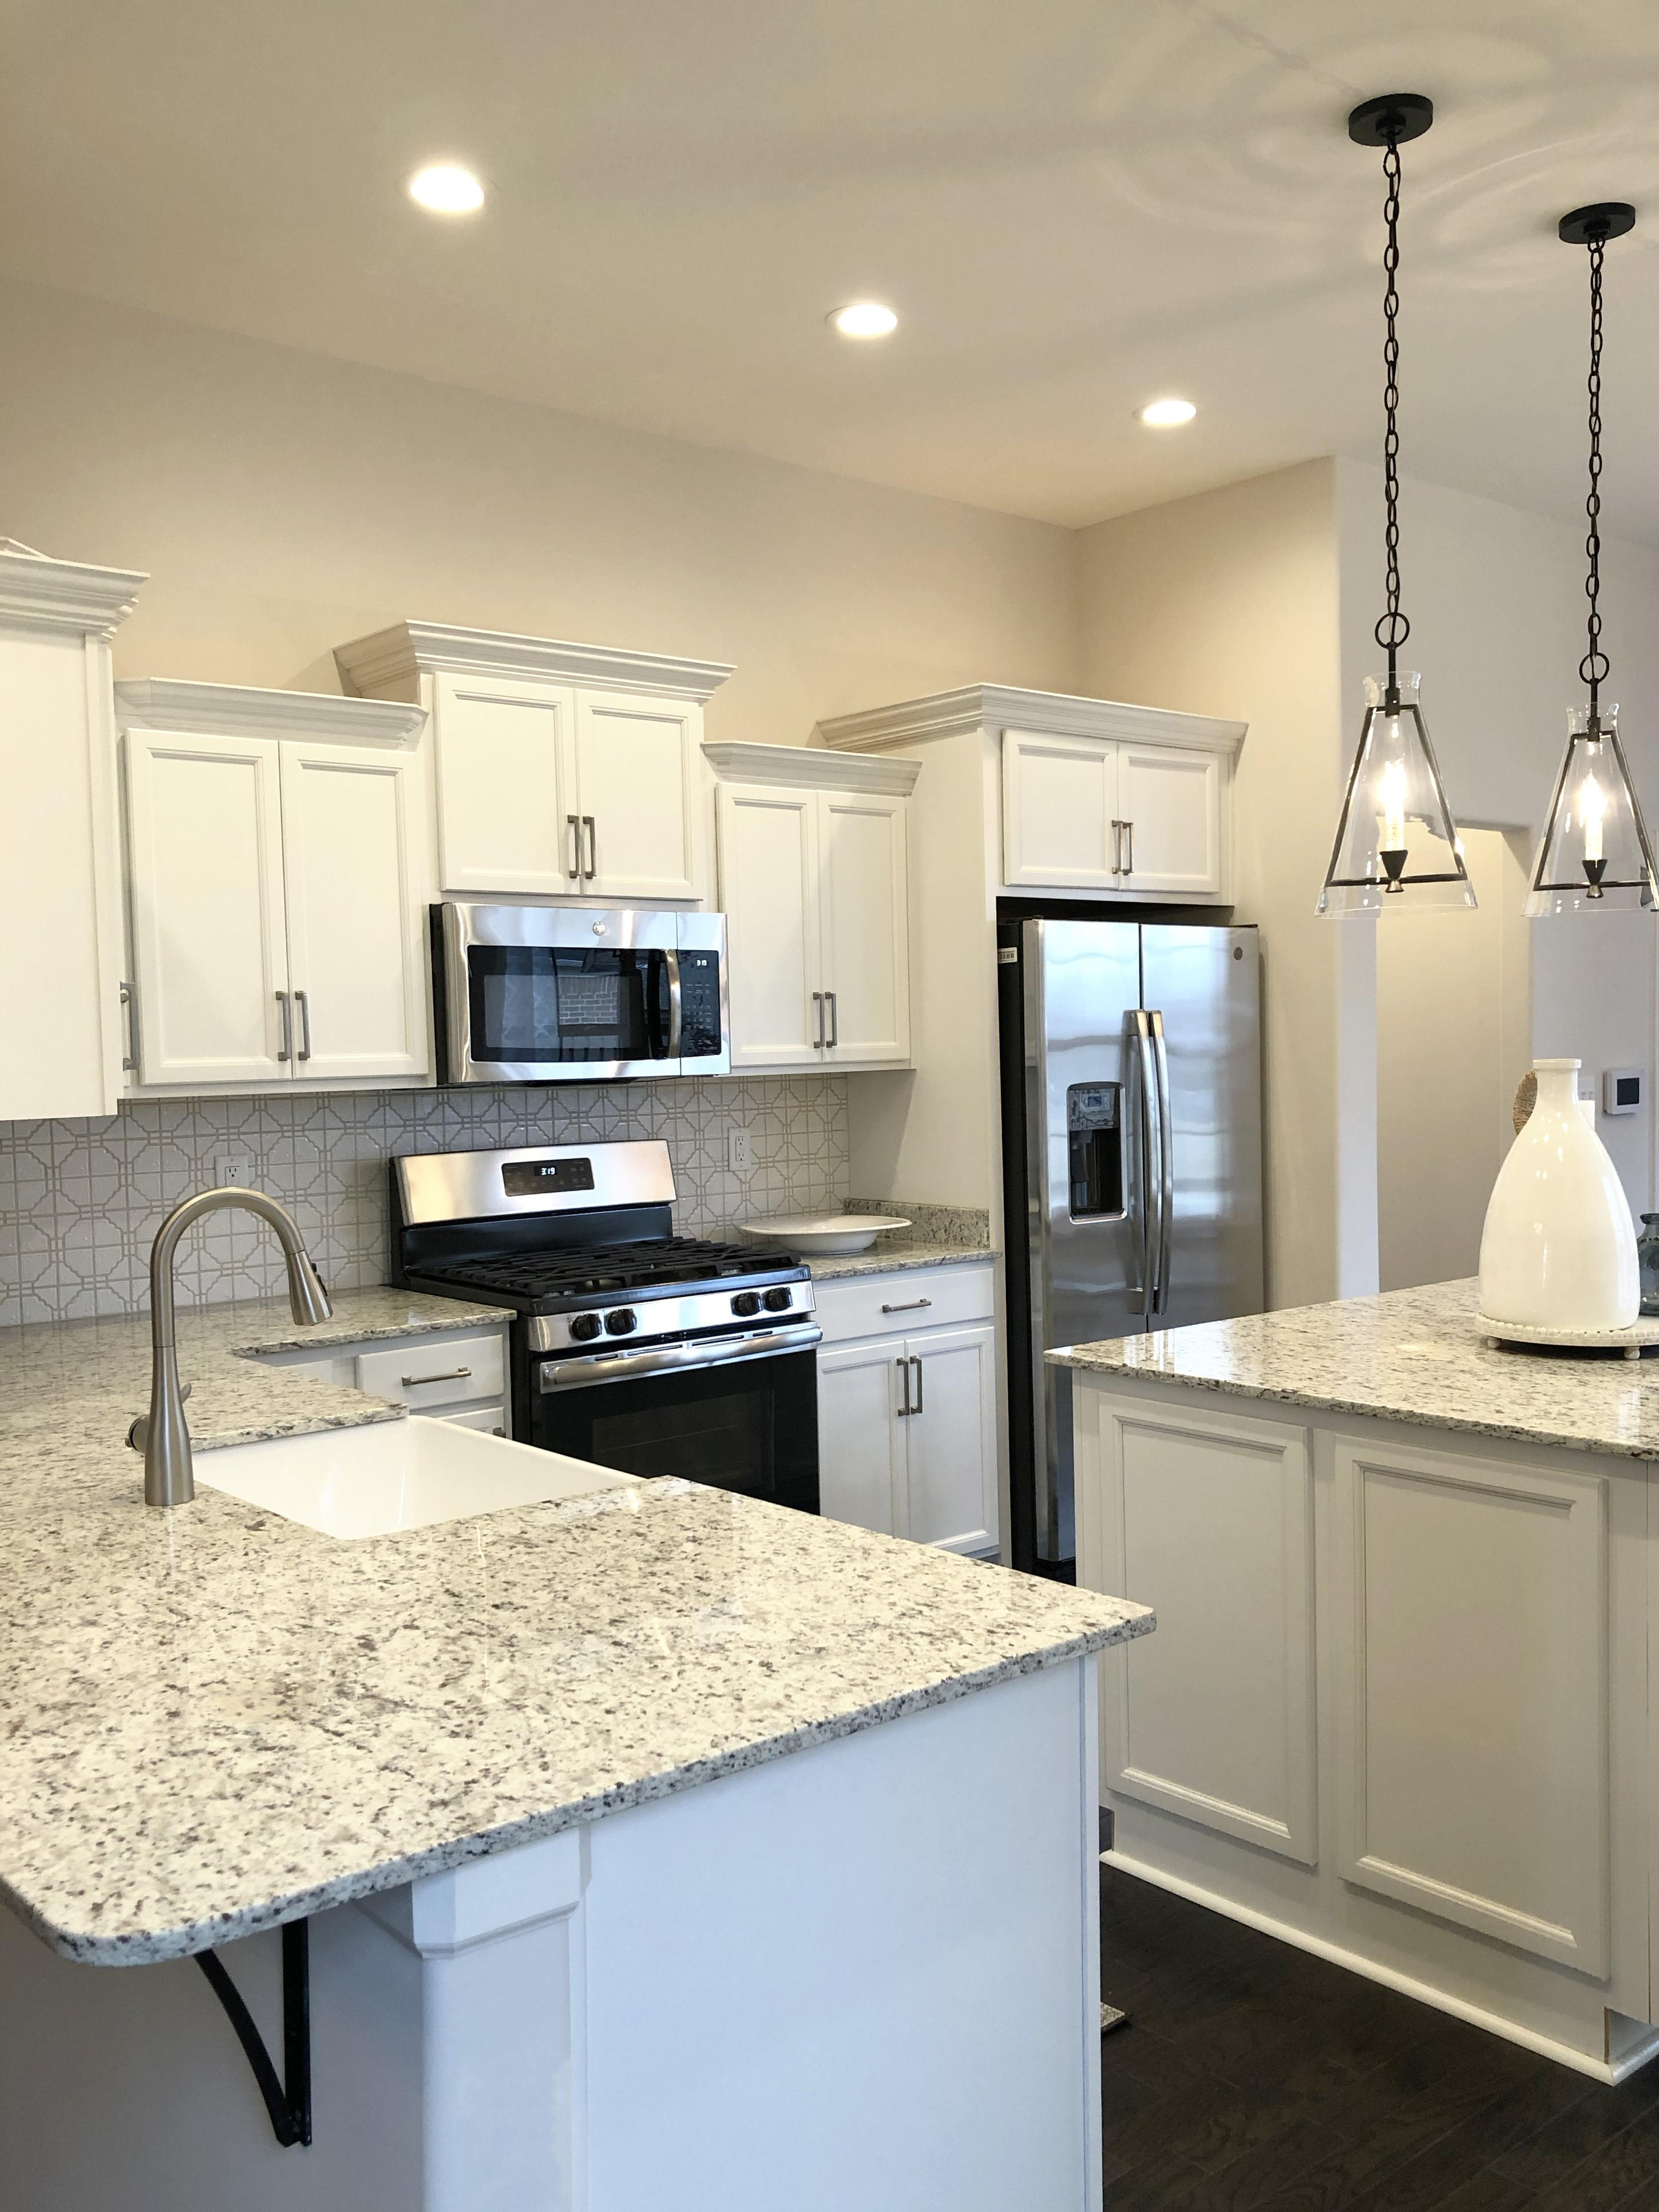 Kitchen featured in the Albright By Regency Homebuilders in Memphis, TN